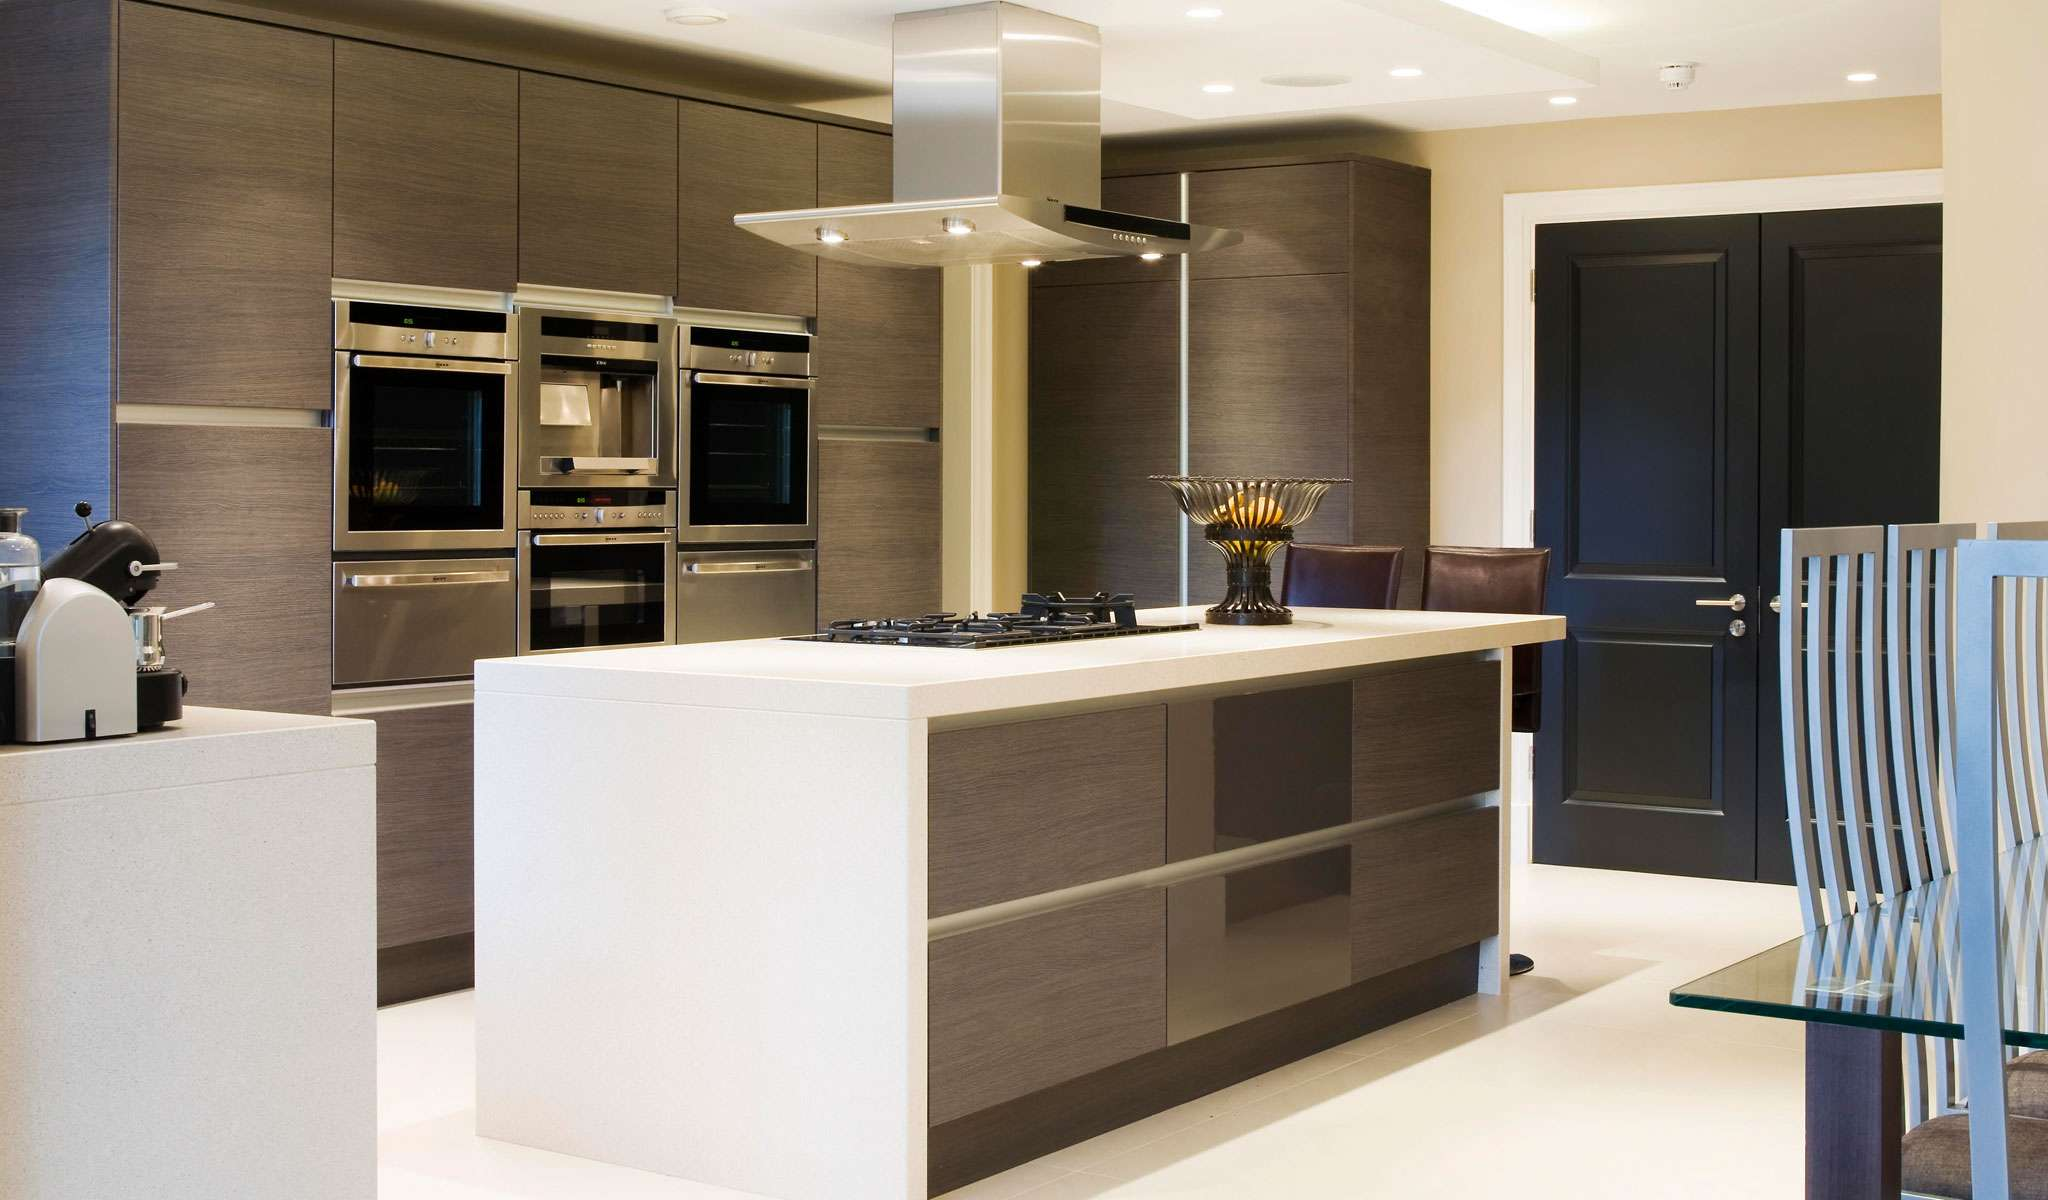 Expanding Your Kitchen Without Expanding Your Home